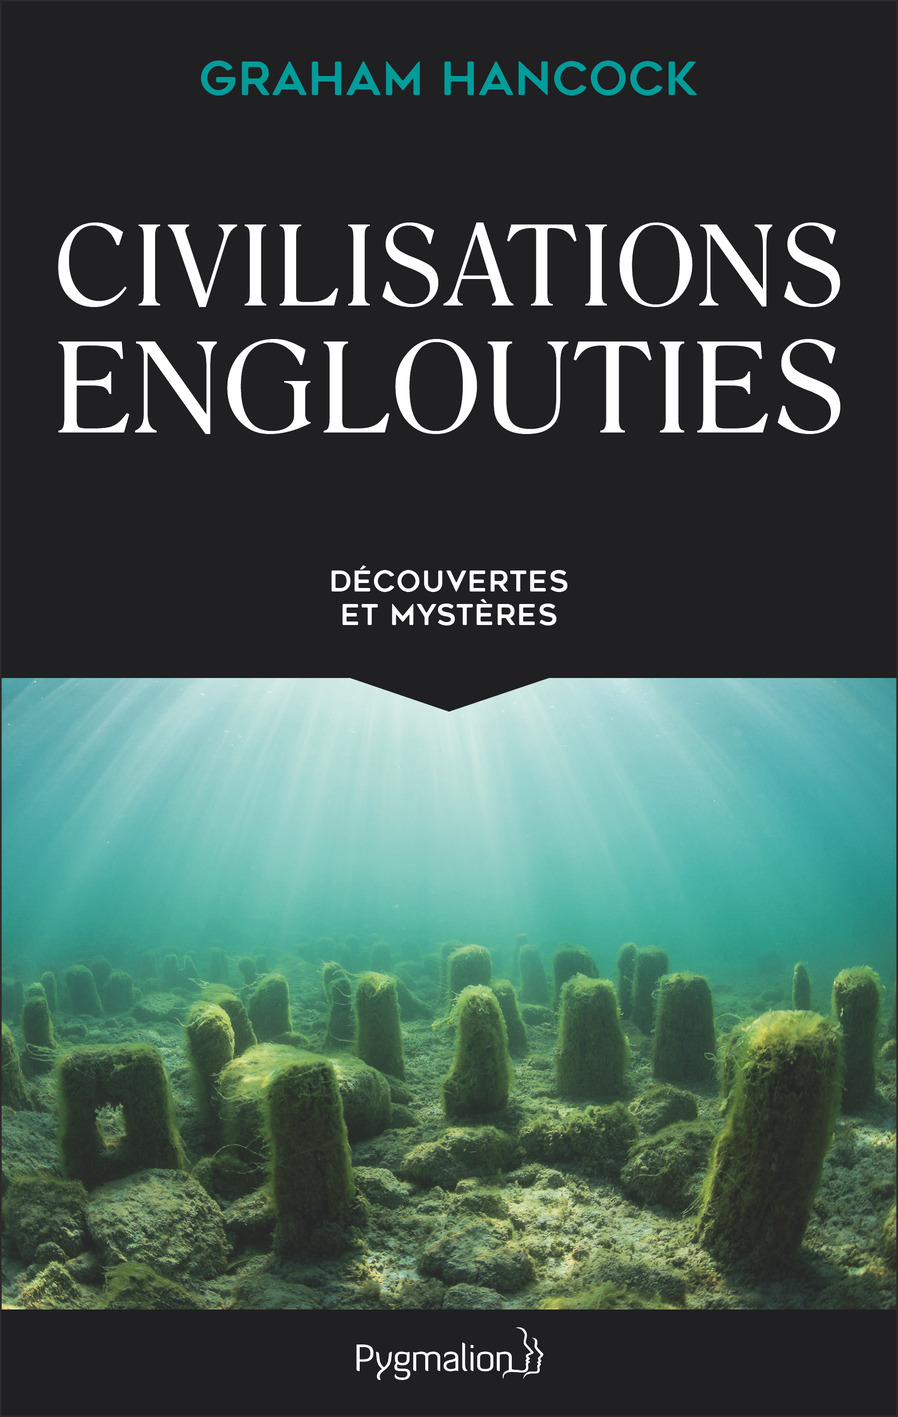 Civilisations englouties